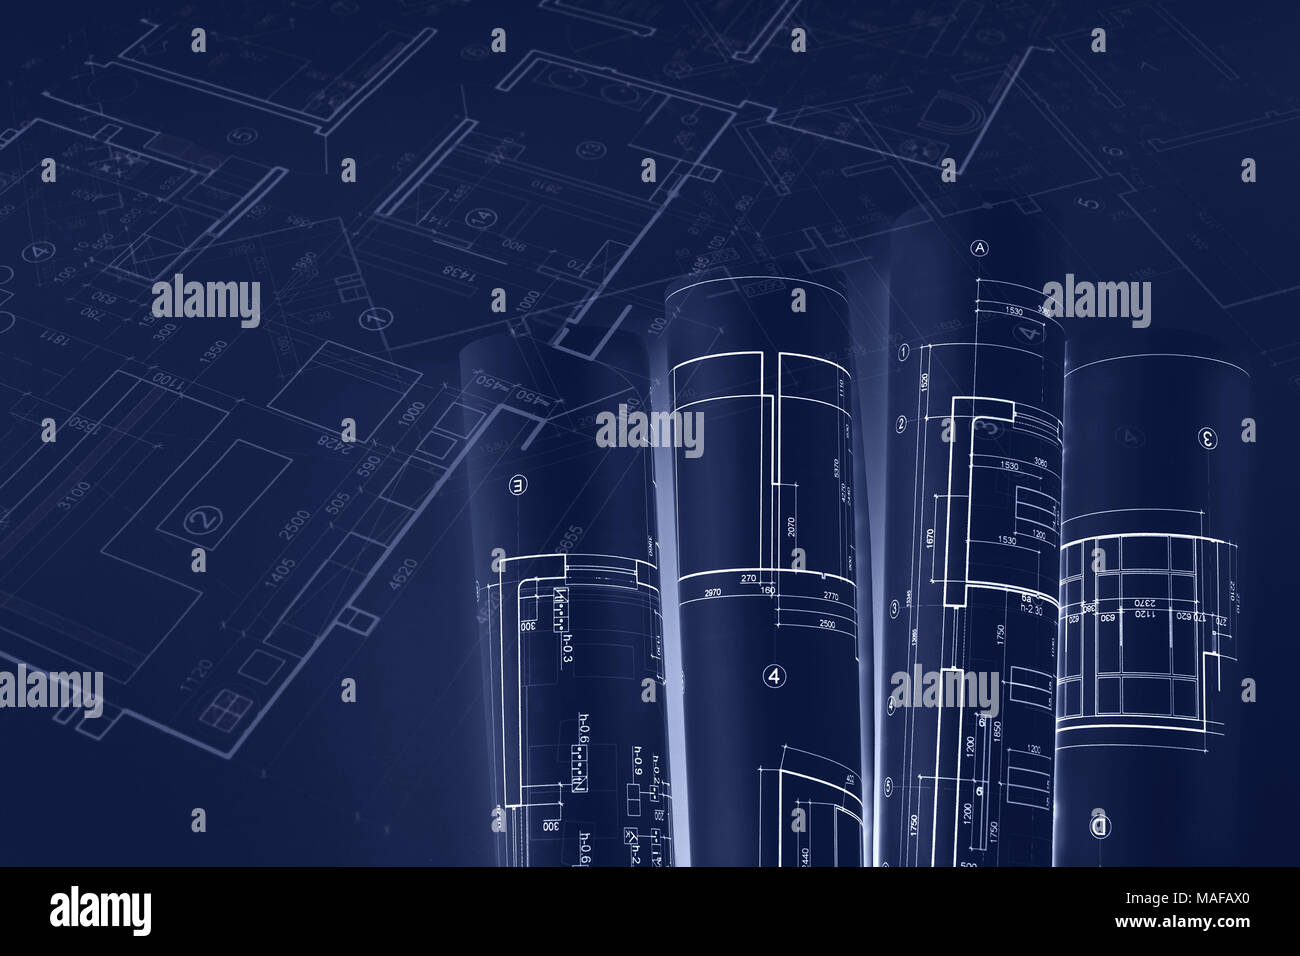 Architectural blueprint rolls technical plan drawings construction architectural blueprint rolls technical plan drawings construction concept blue toned double exposure image malvernweather Gallery